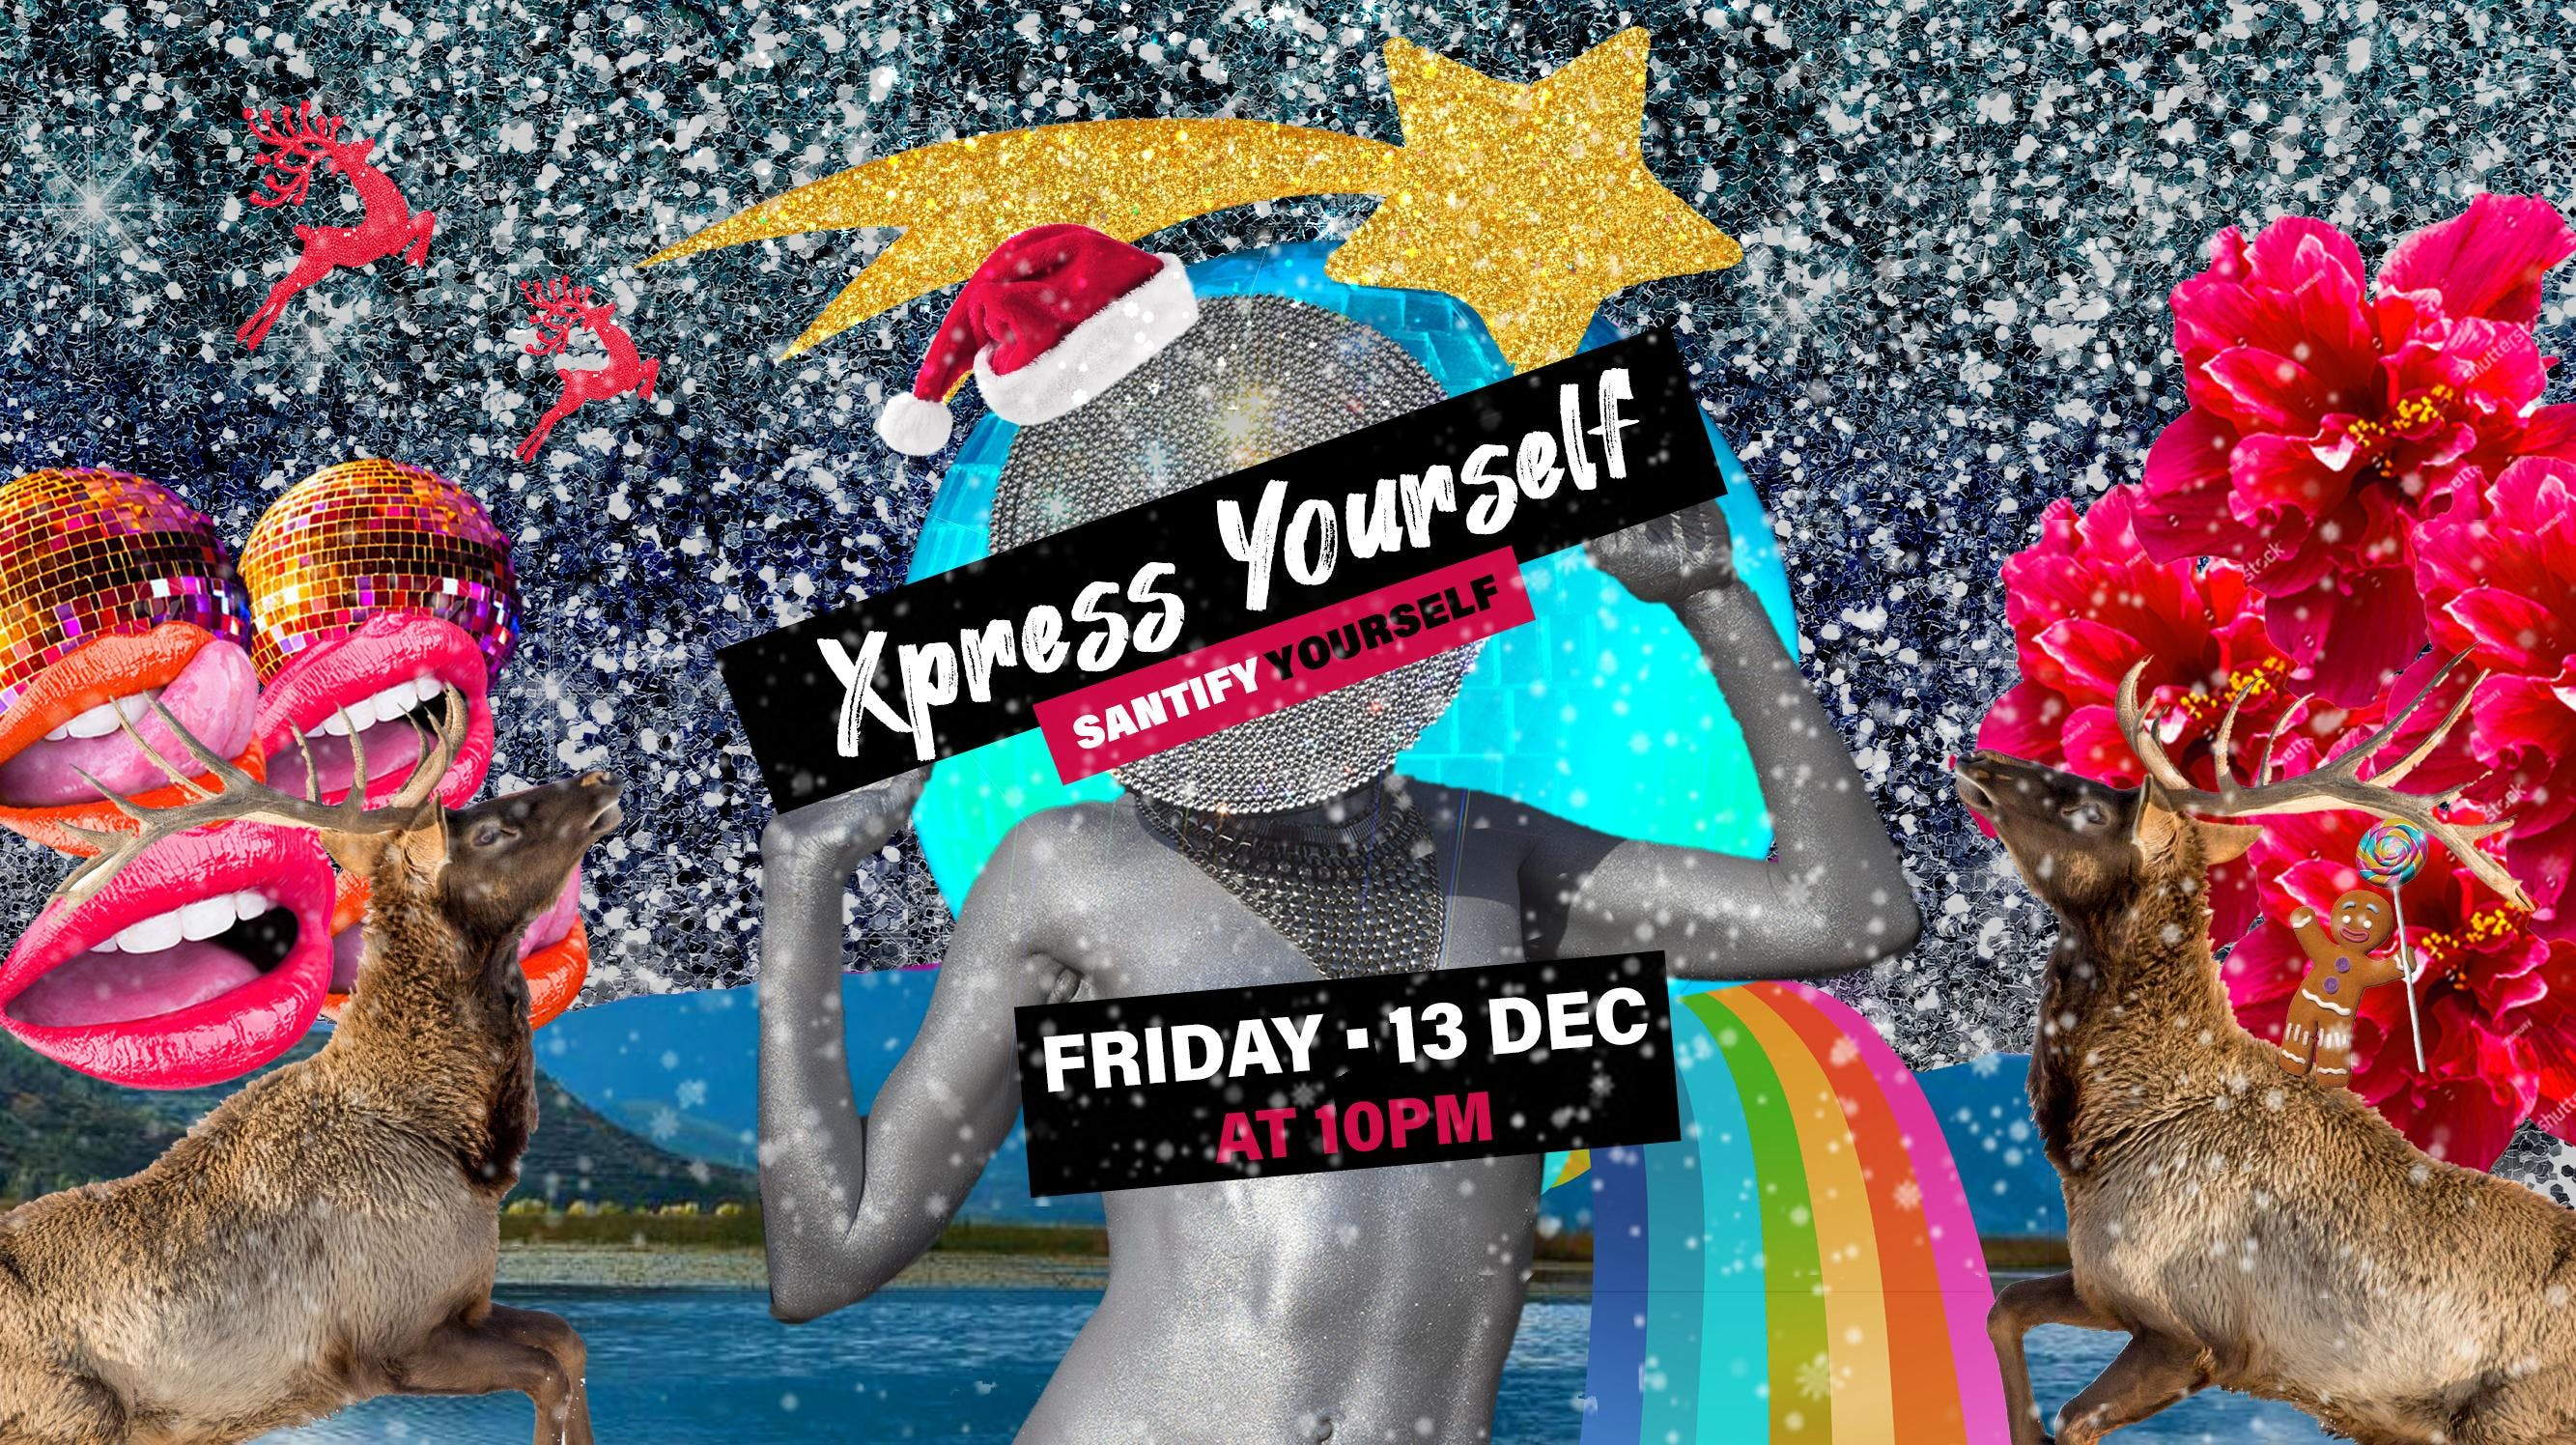 Xpress Yourself presents Santify Yourself